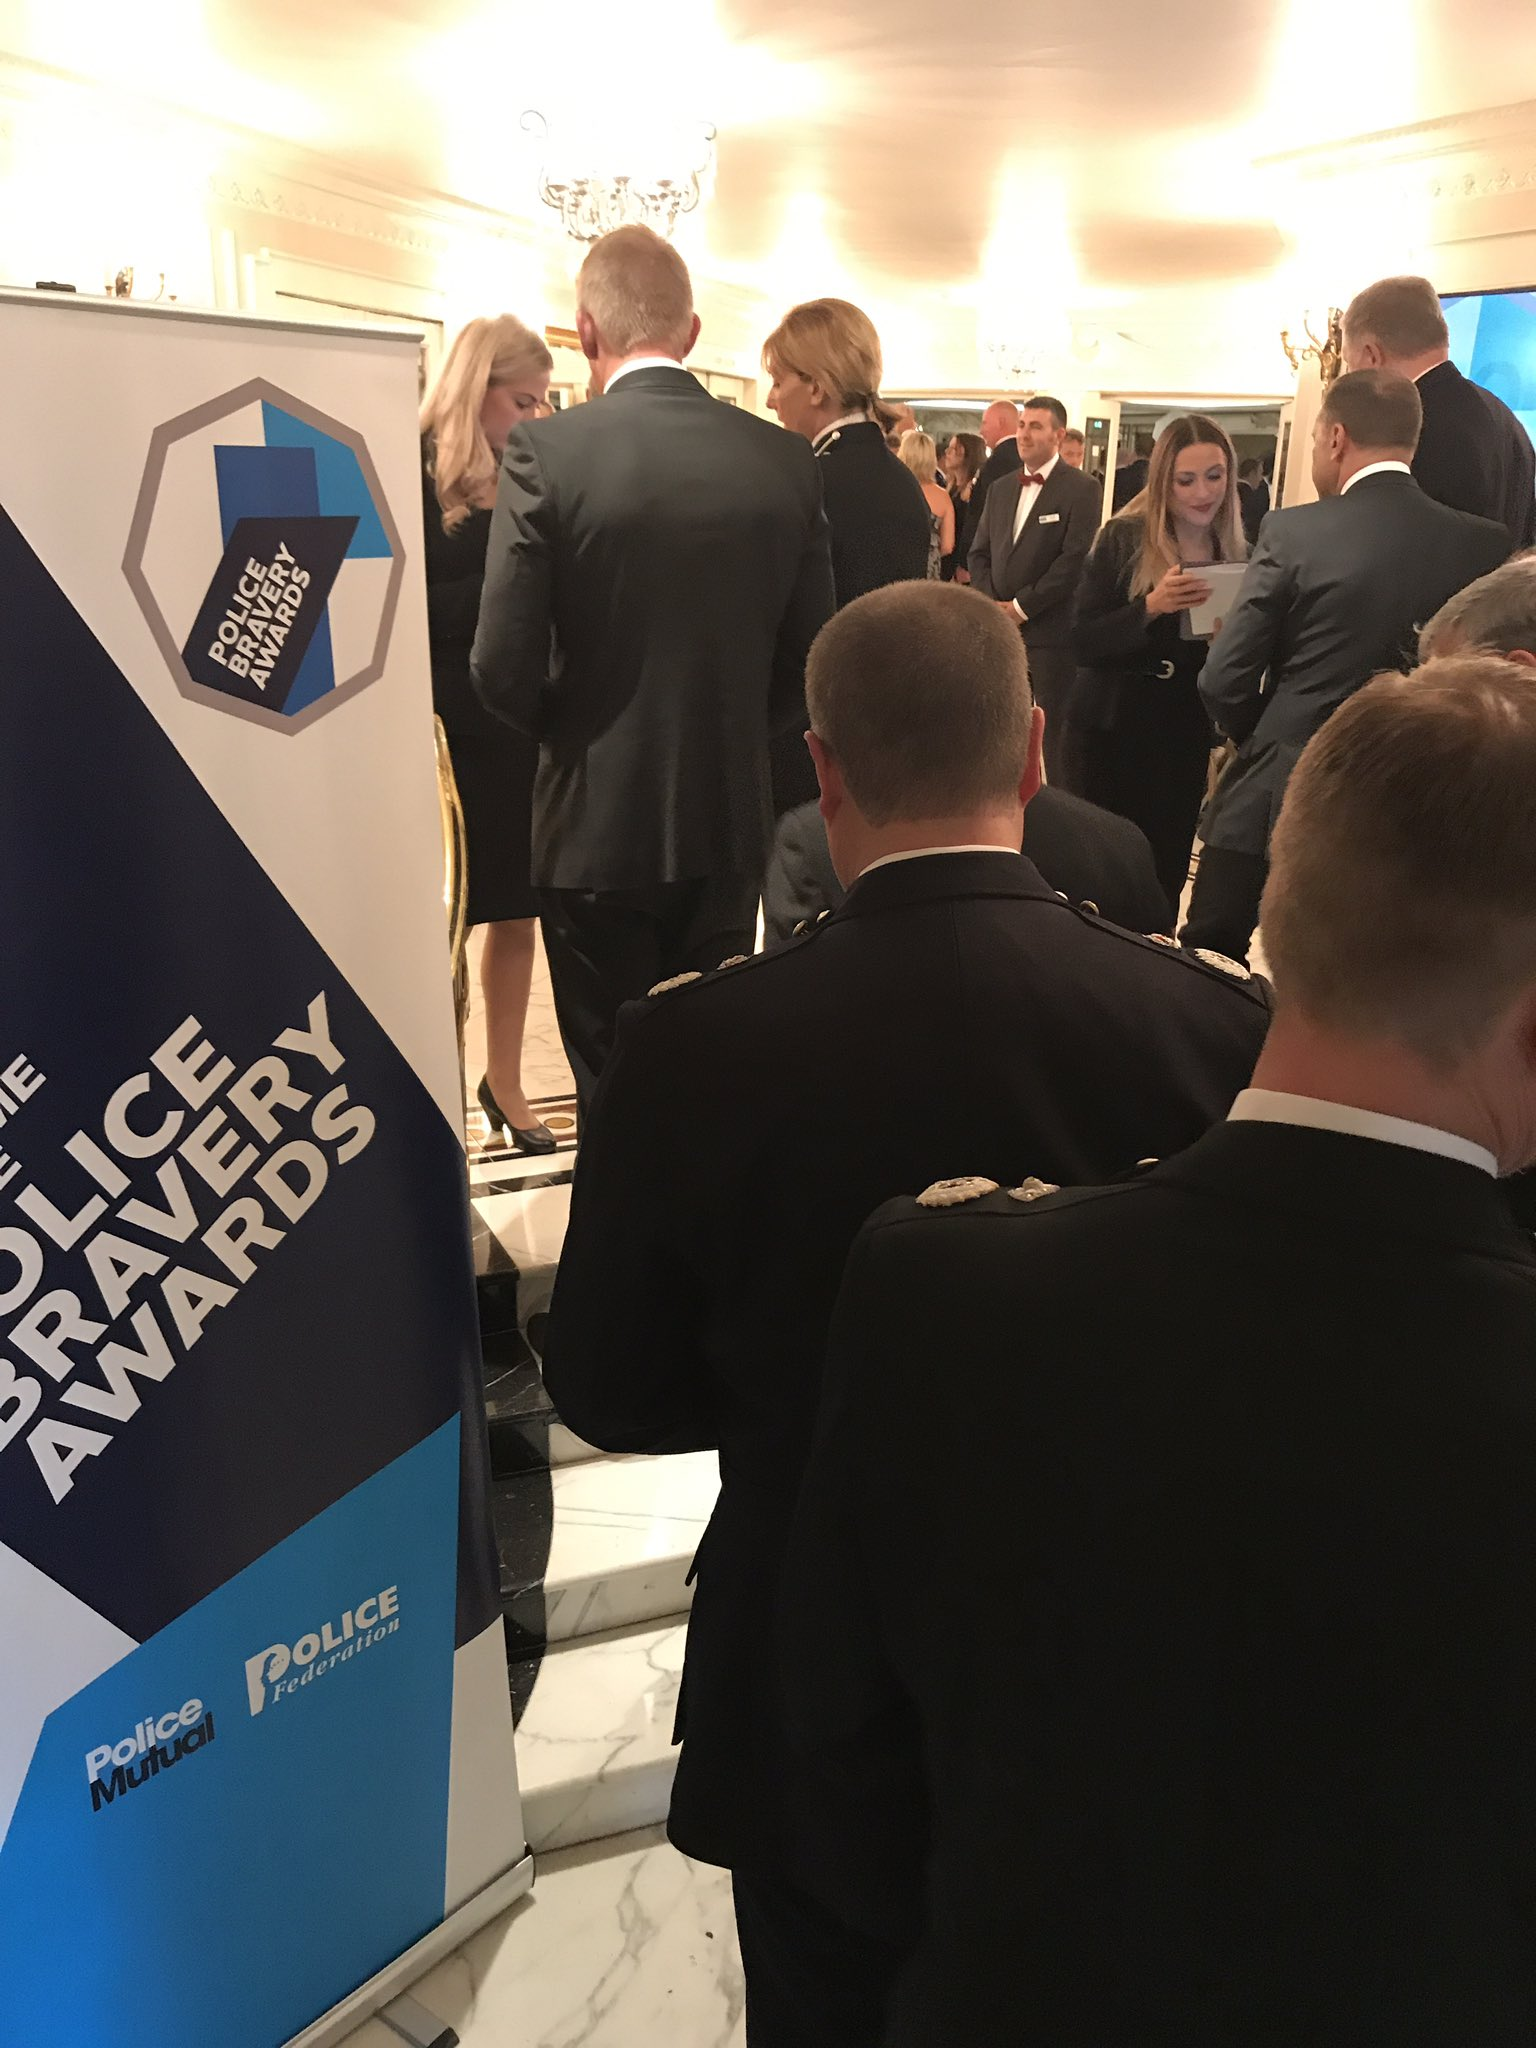 Tonight's #PoliceBravery awards will shortly be starting as our guests begin to arrive https://t.co/Siwxuo0NMm